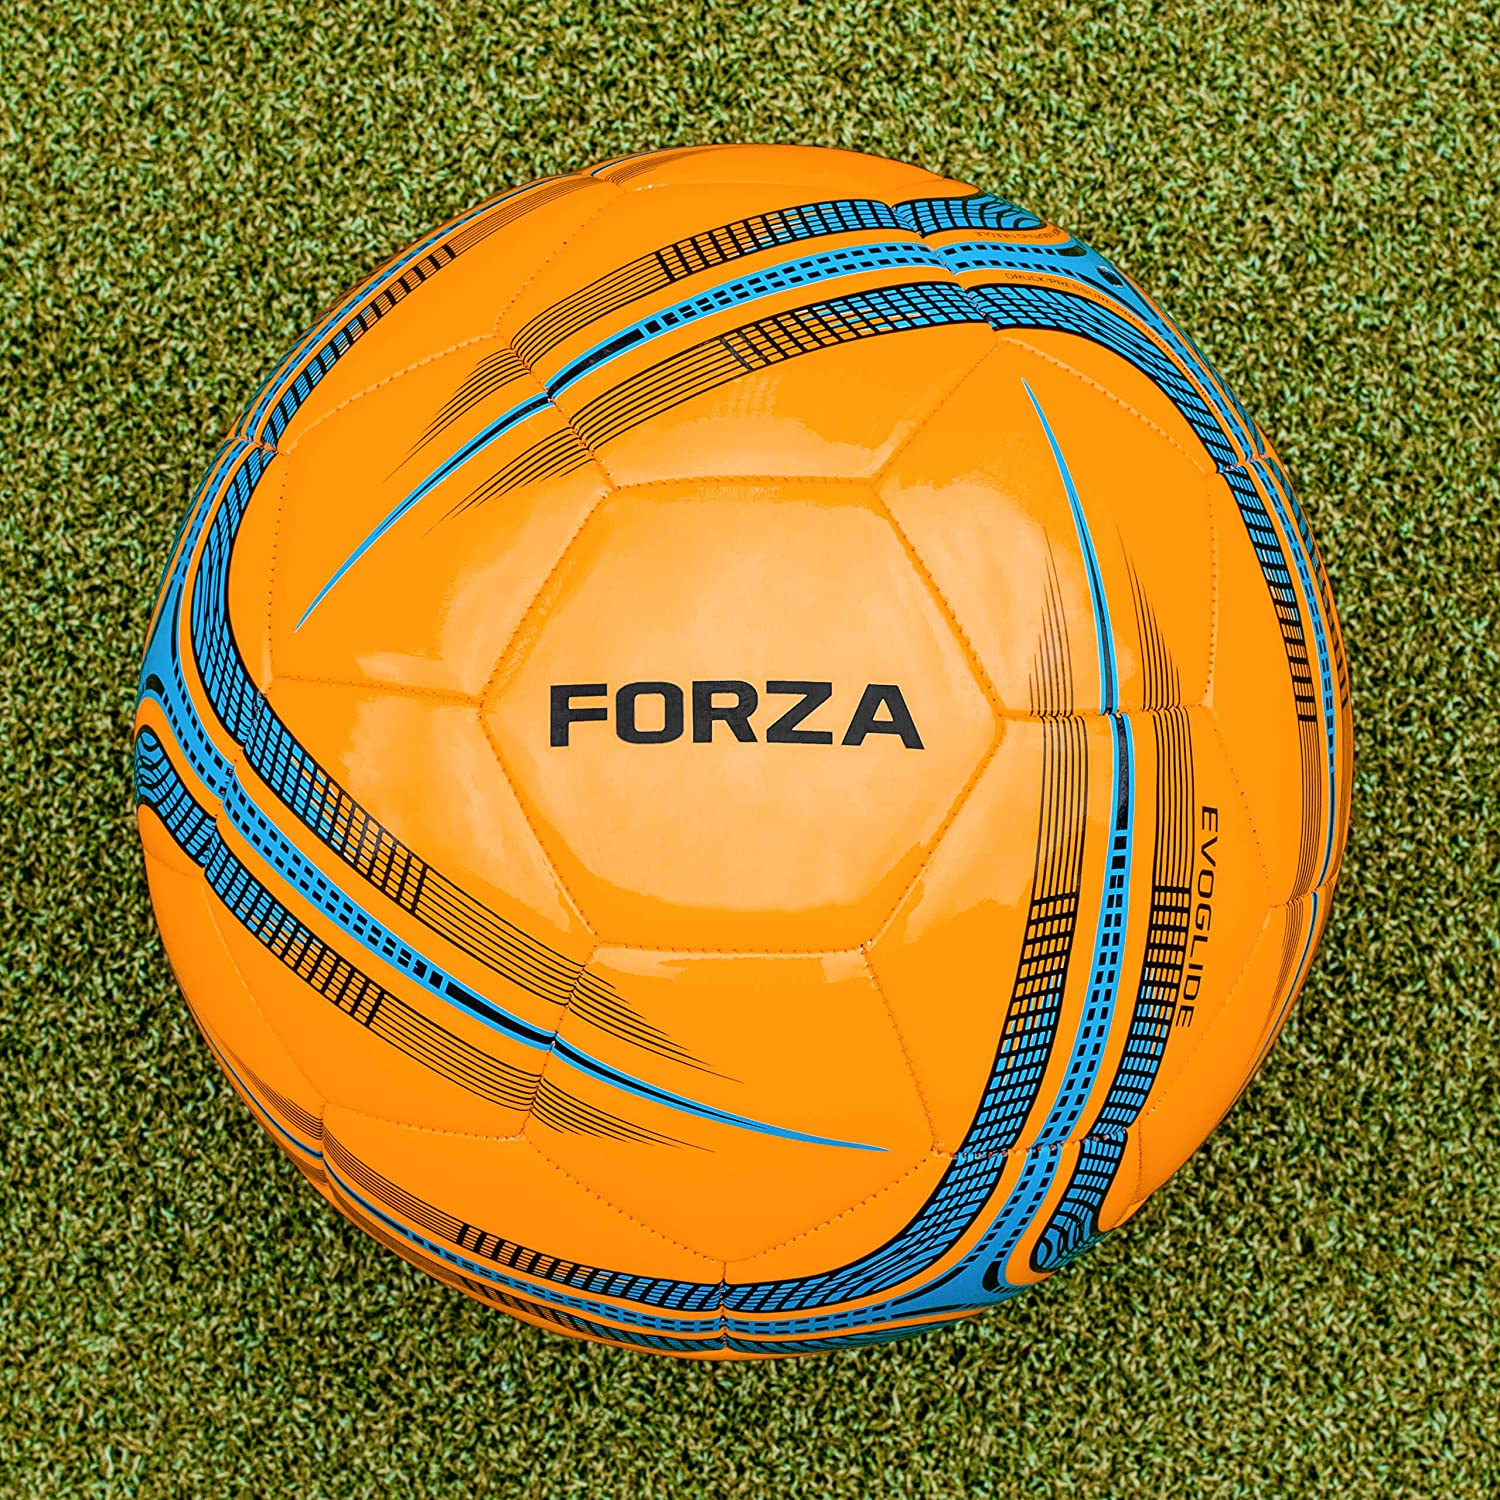 Net World Sports | Professional Quality Soccer Practice Ball Forza Training Soccer Ball Size 2, 3, 4 or 5